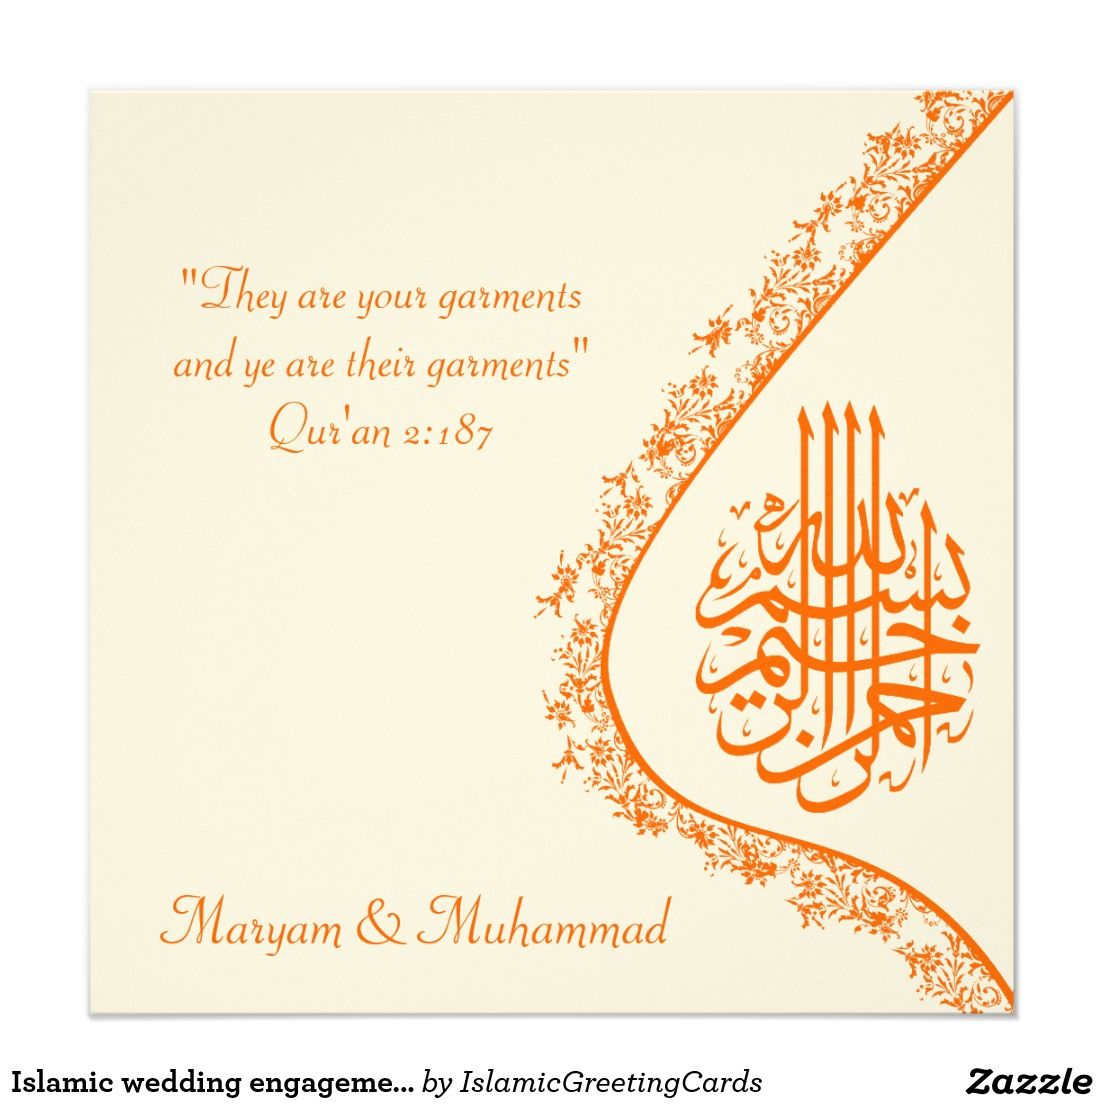 Islamic wedding engagement damask invitation card | Damasks ...